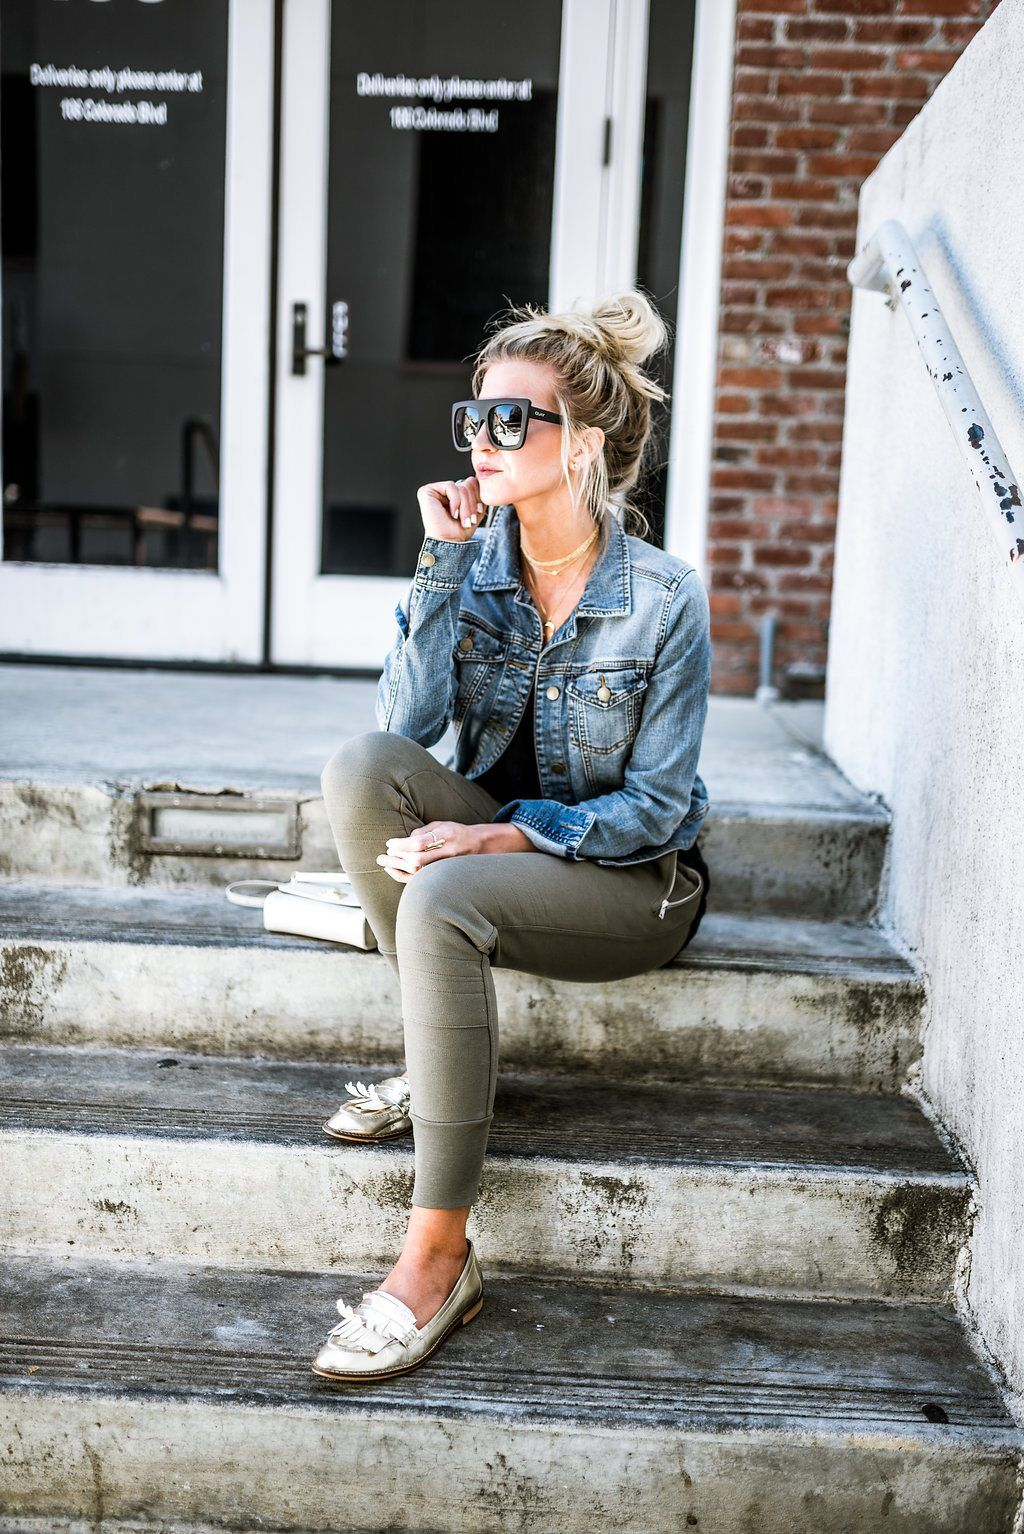 Three Tips For Styling Joggers Elle Apparel By Leanne Barlow Style Fashion Elle Apparel [ 1534 x 1024 Pixel ]